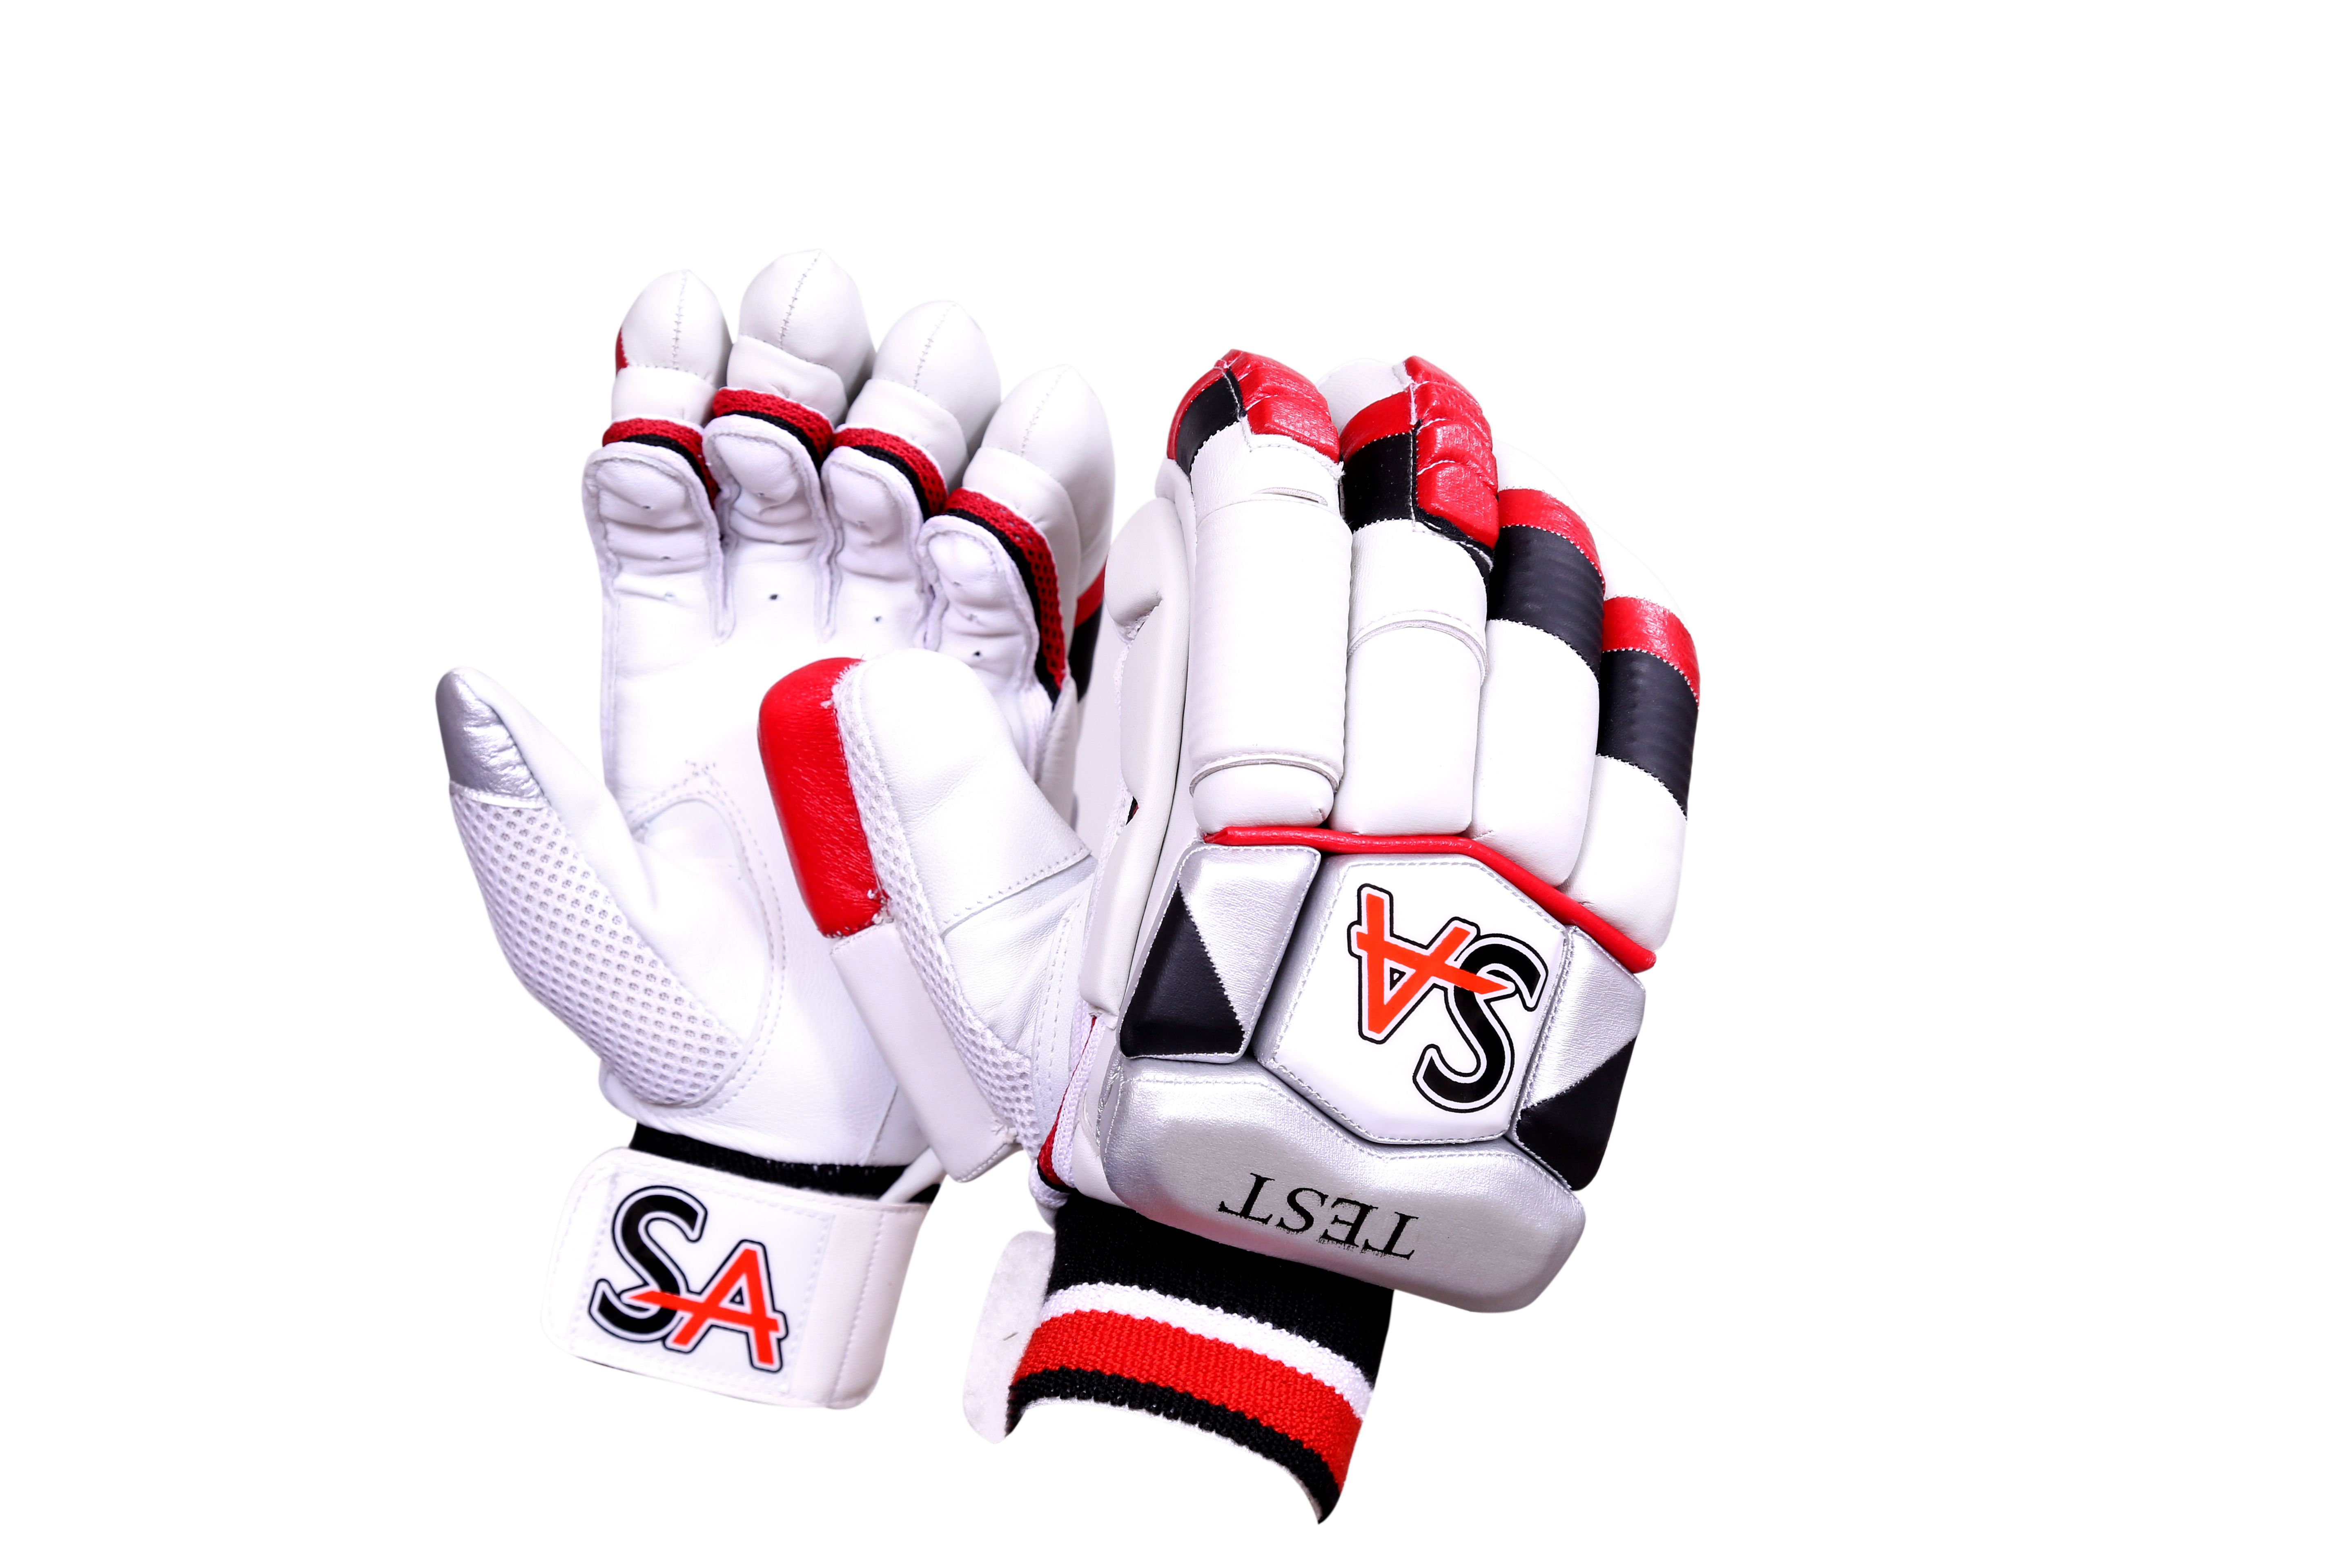 397b1f59767 Buy Cricket Batting Gloves Online India